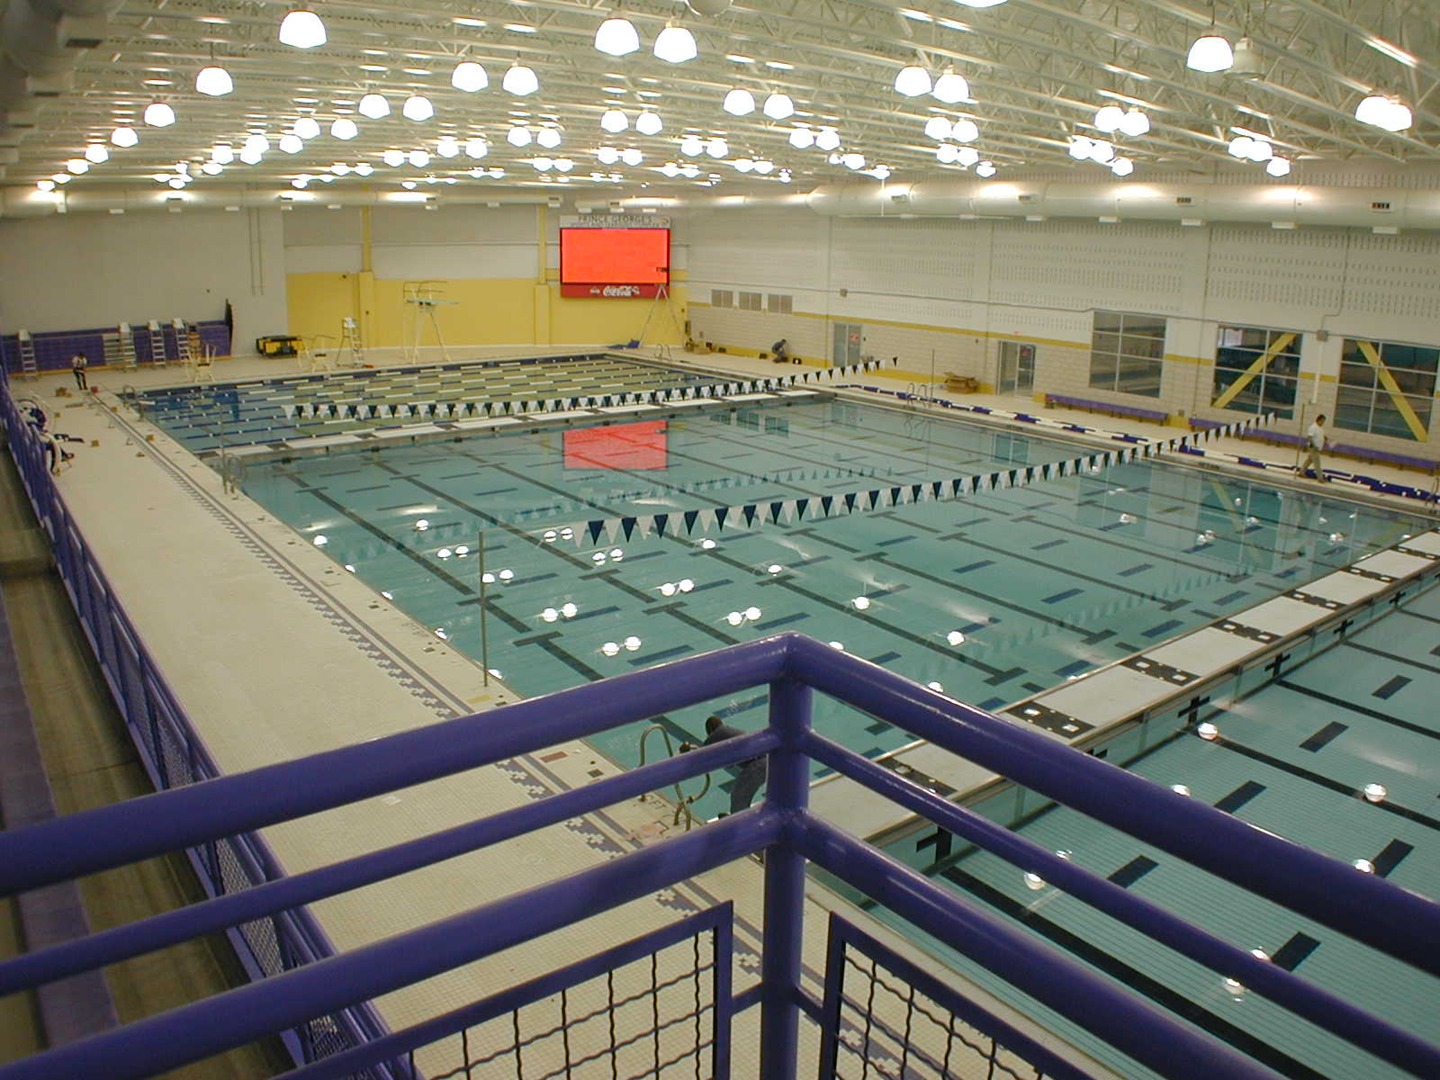 Prince George's County Sports and Learning Center - Sheet3